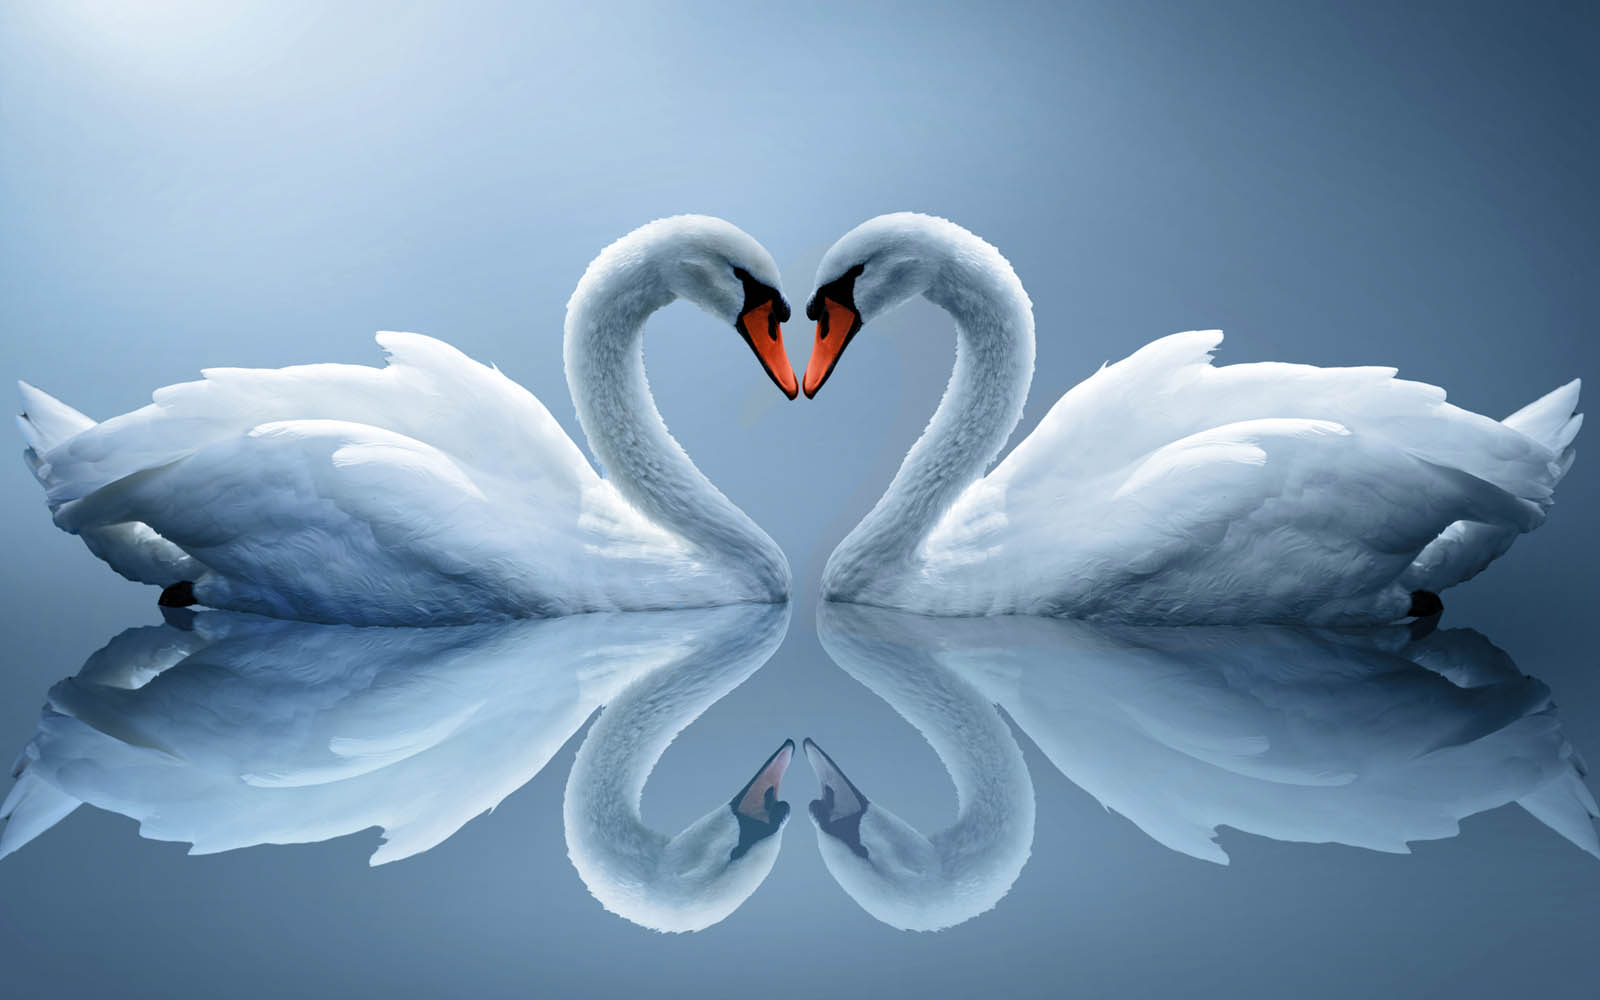 Tag swan wallpapers backgrounds photos imagesand pictures for free